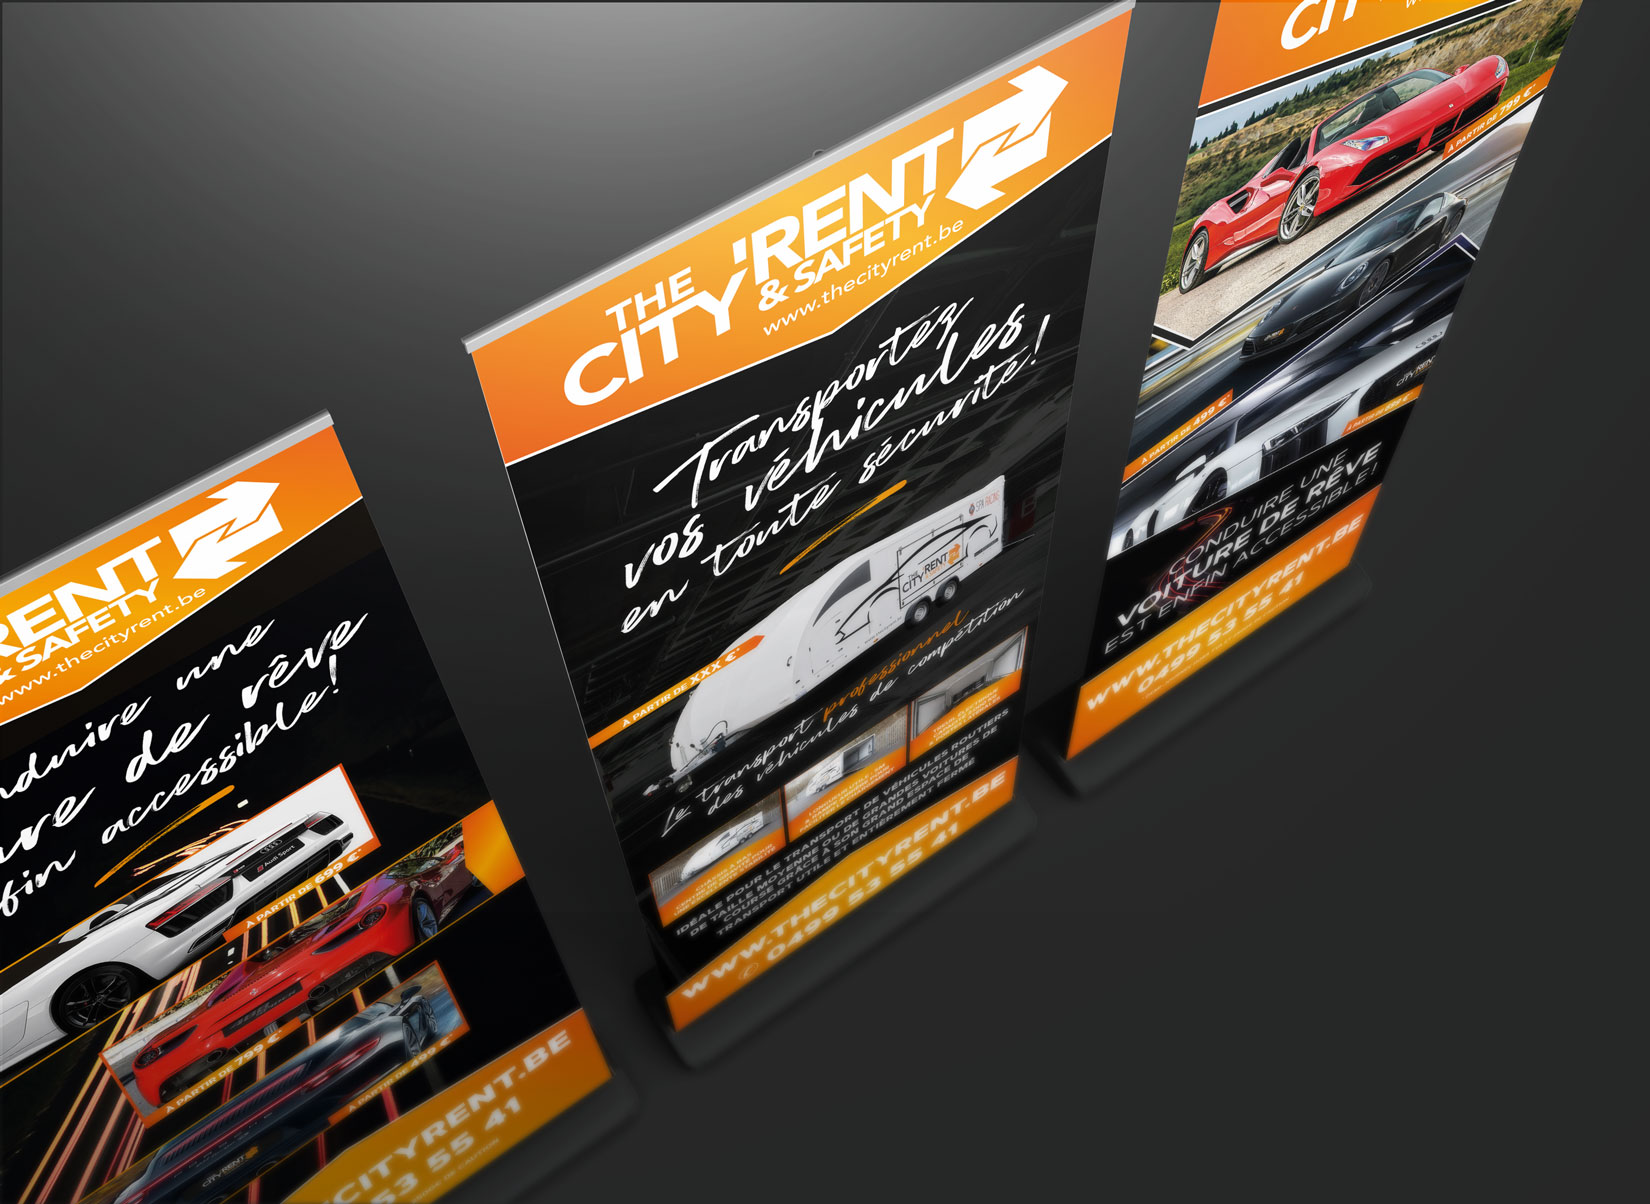 Roll-Up | The Cityrent - Malmedy